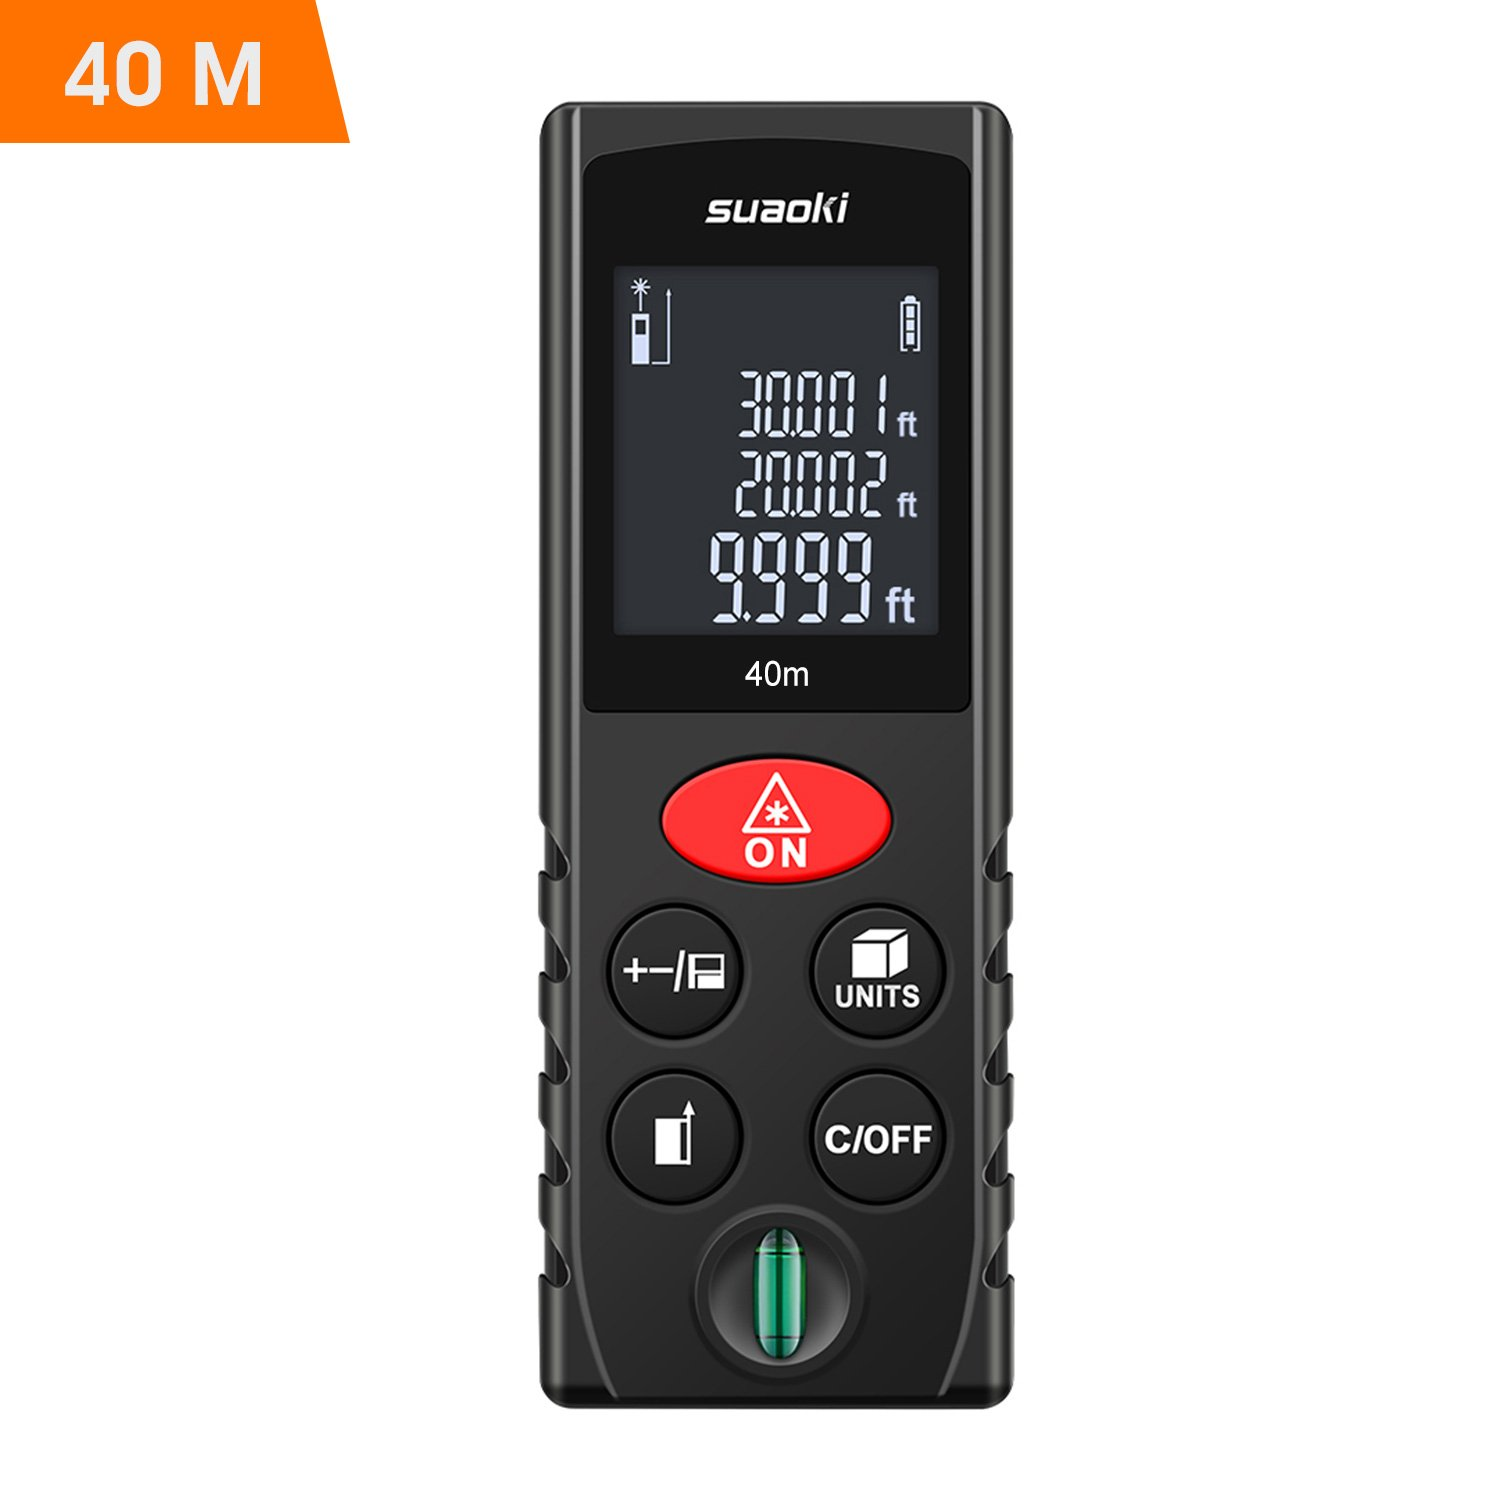 Suaoki Laser Measure 131Ft with Multi Function Laser Measuring Device with Bubble Level, Pythagorean Mode, Area and Volume Calculation - Battery Included